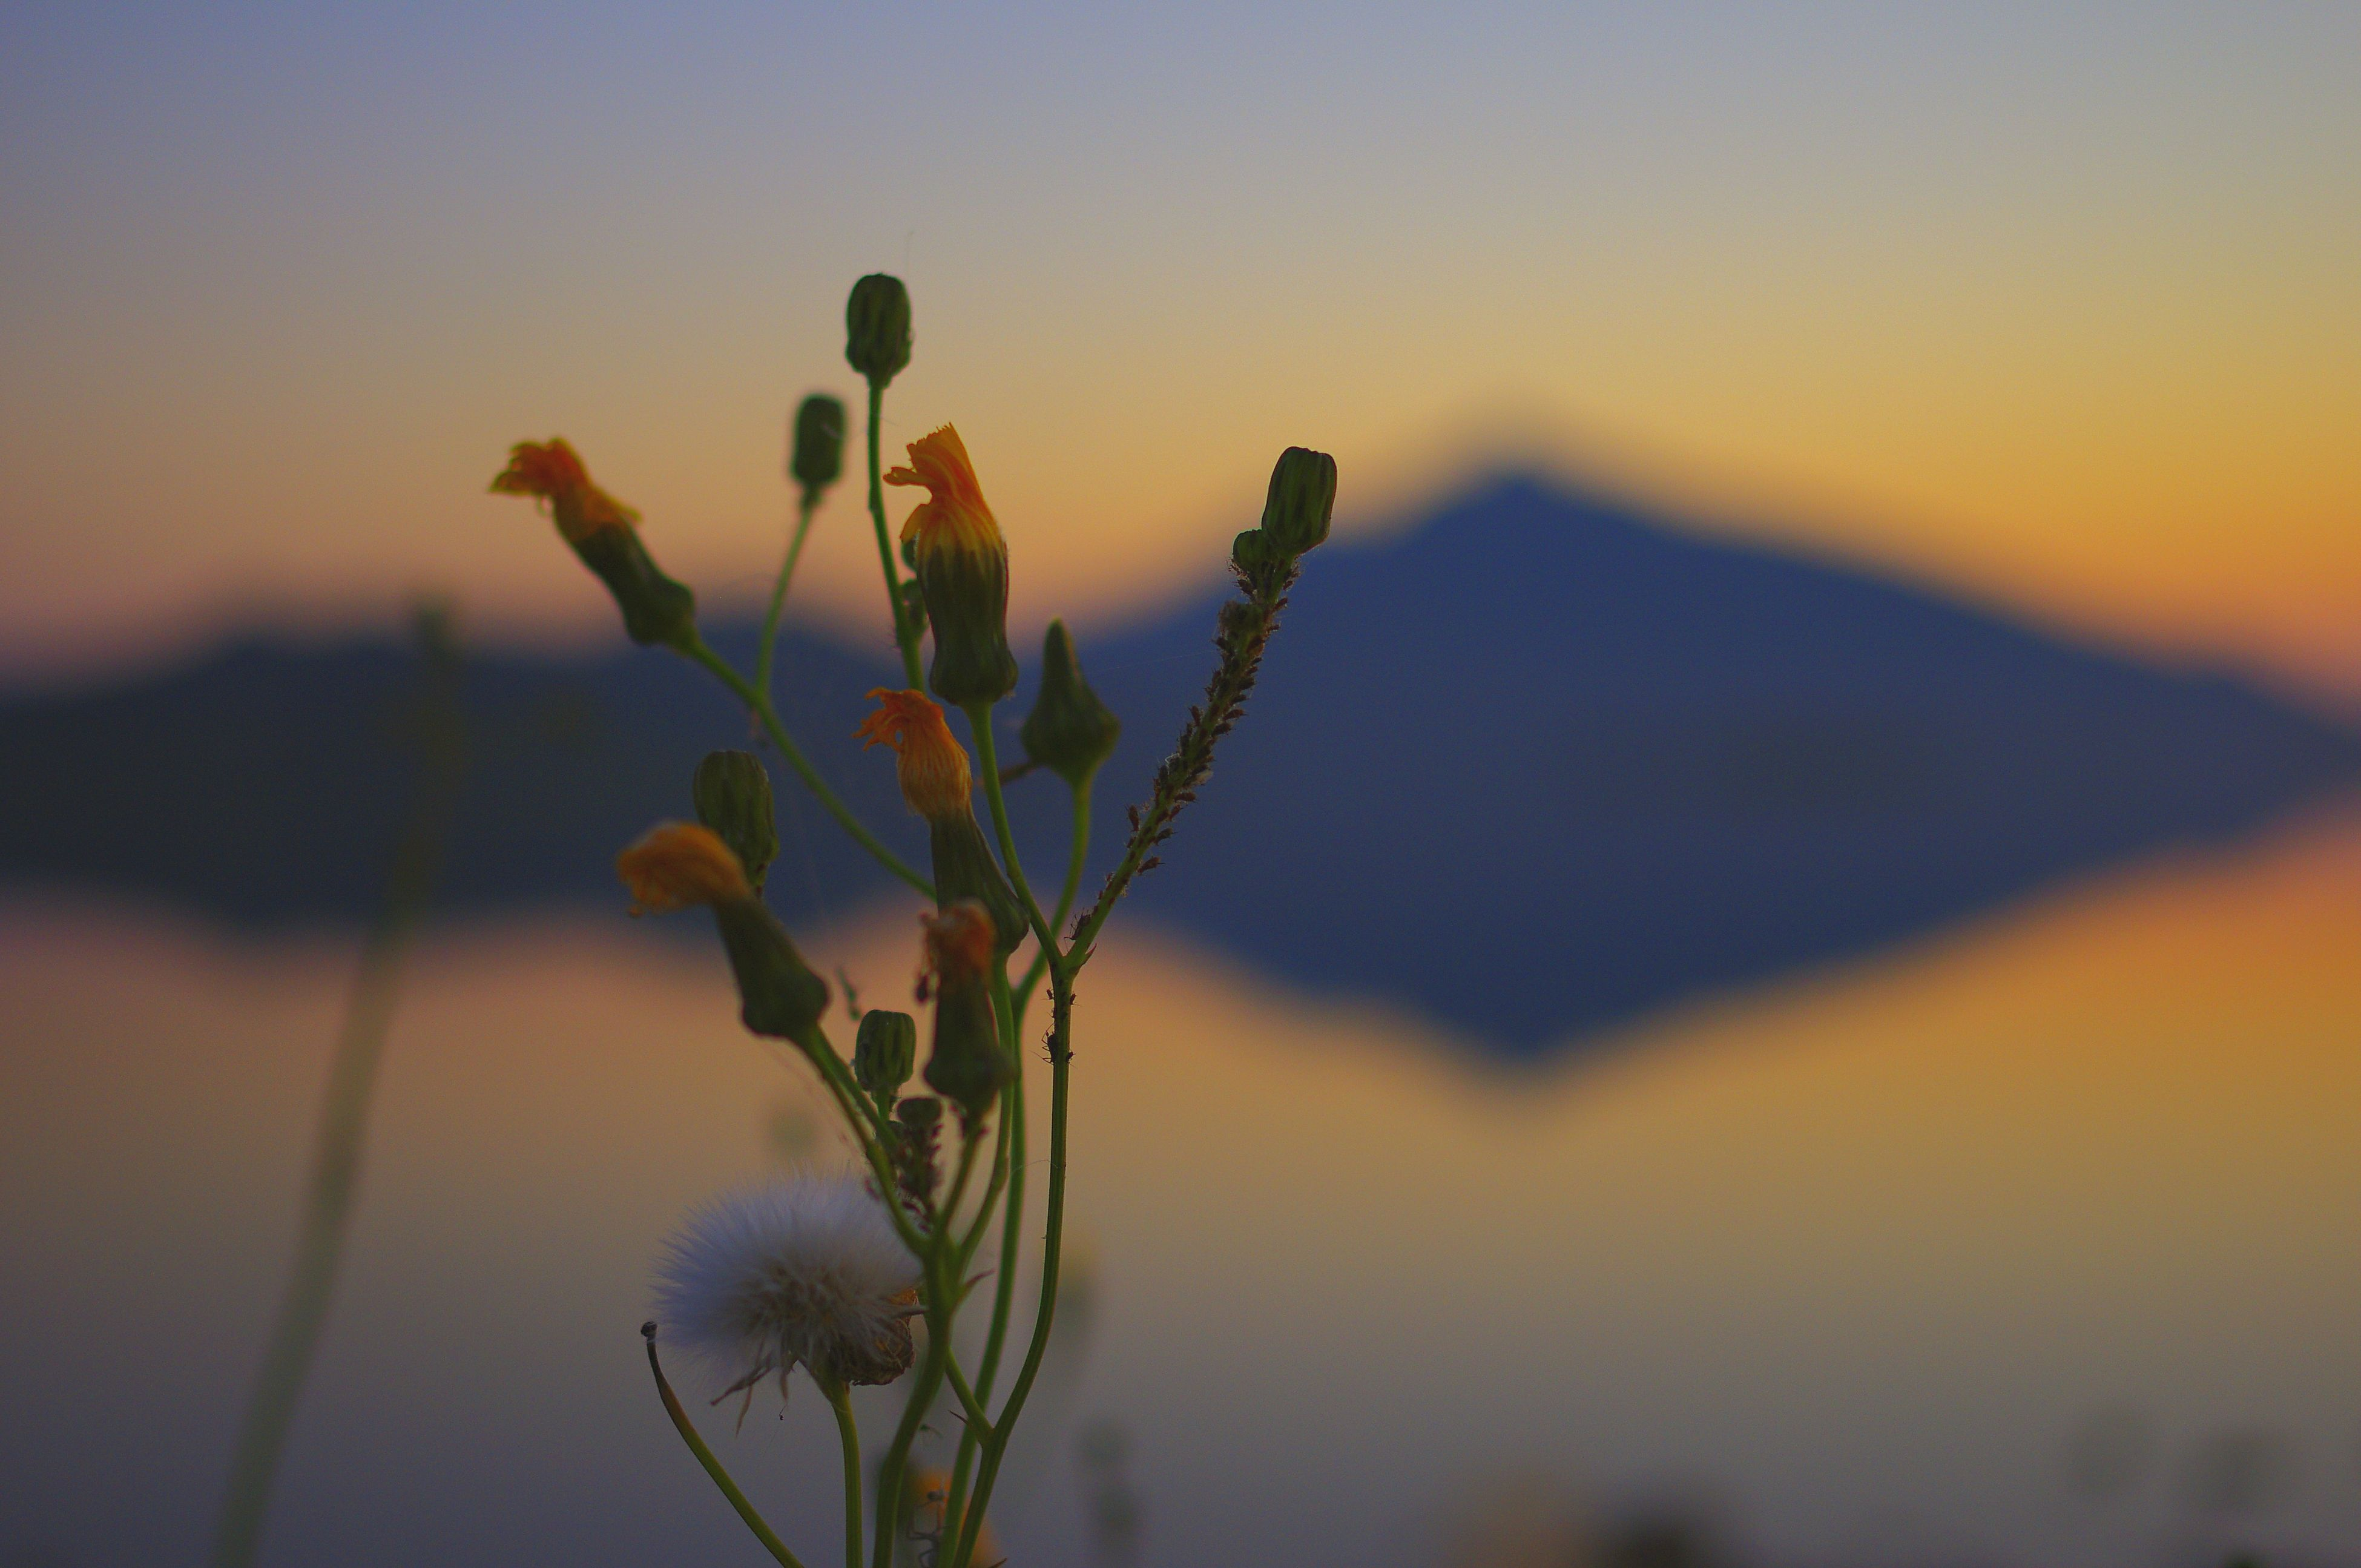 flower, growth, plant, fragility, stem, freshness, focus on foreground, beauty in nature, nature, close-up, petal, bud, sky, sunset, flower head, selective focus, blooming, tranquility, field, outdoors